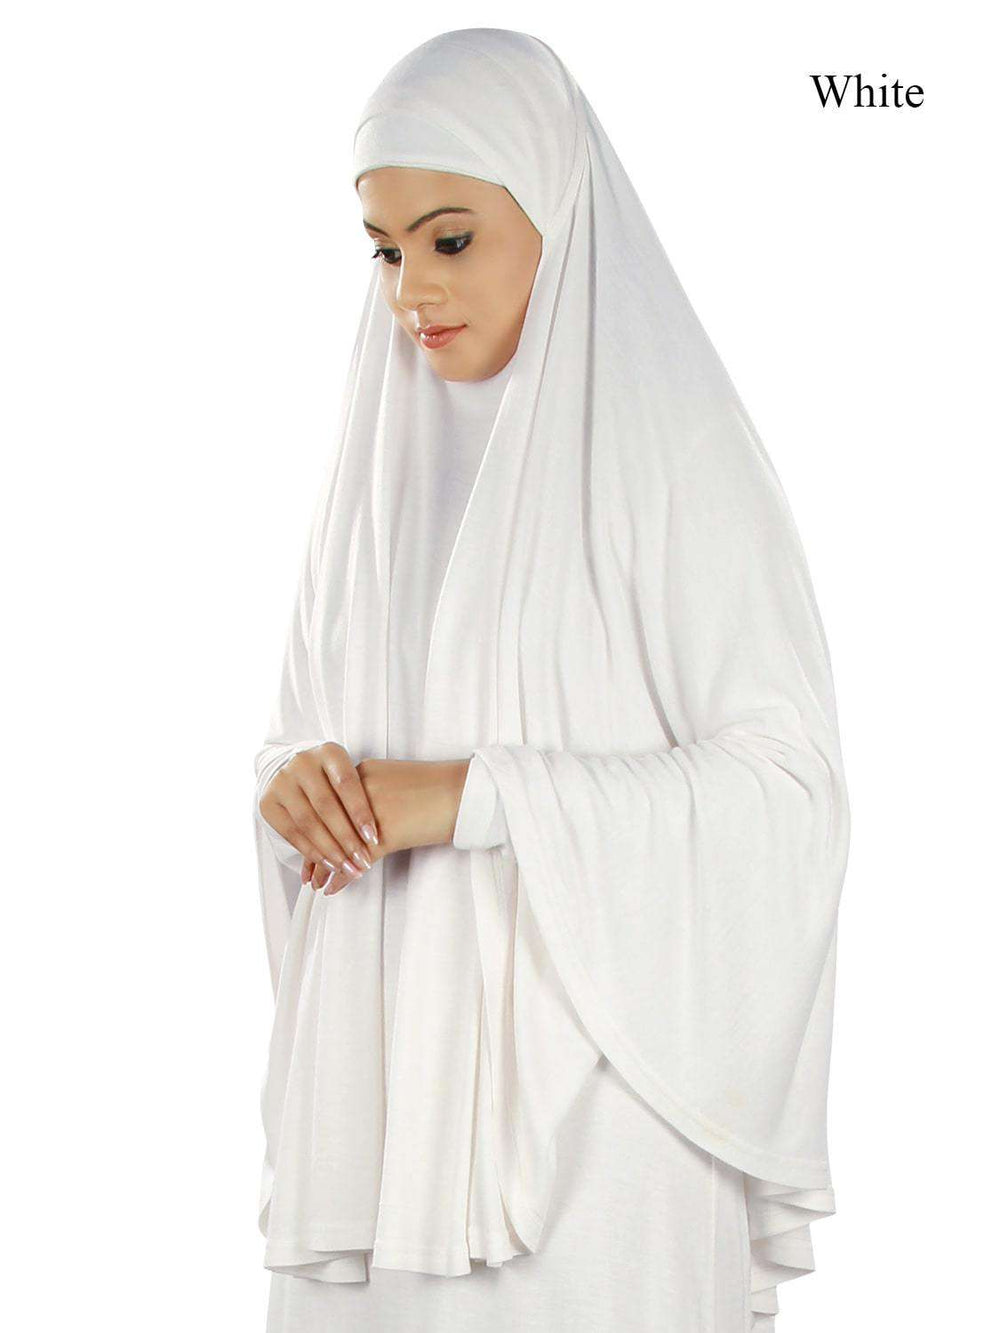 Dua Prayer Khimar - Soft Viscose Jersey